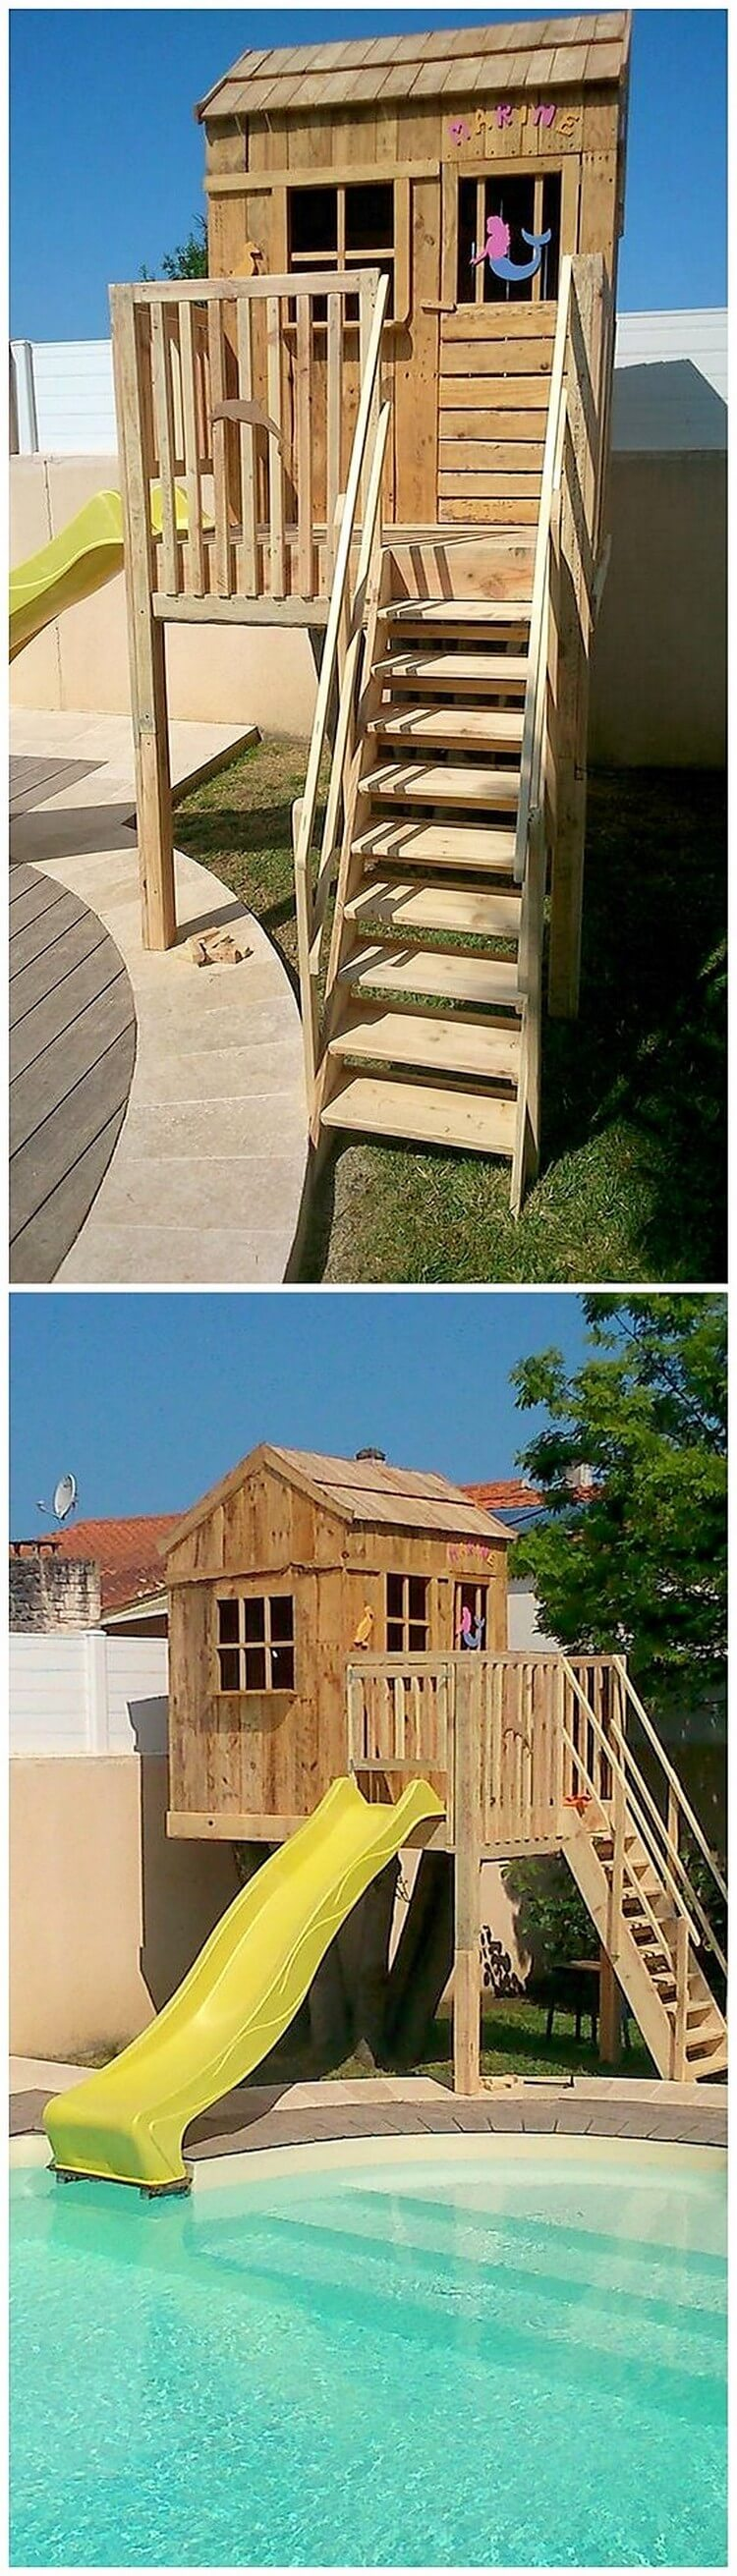 Pallet Playhouse (2)